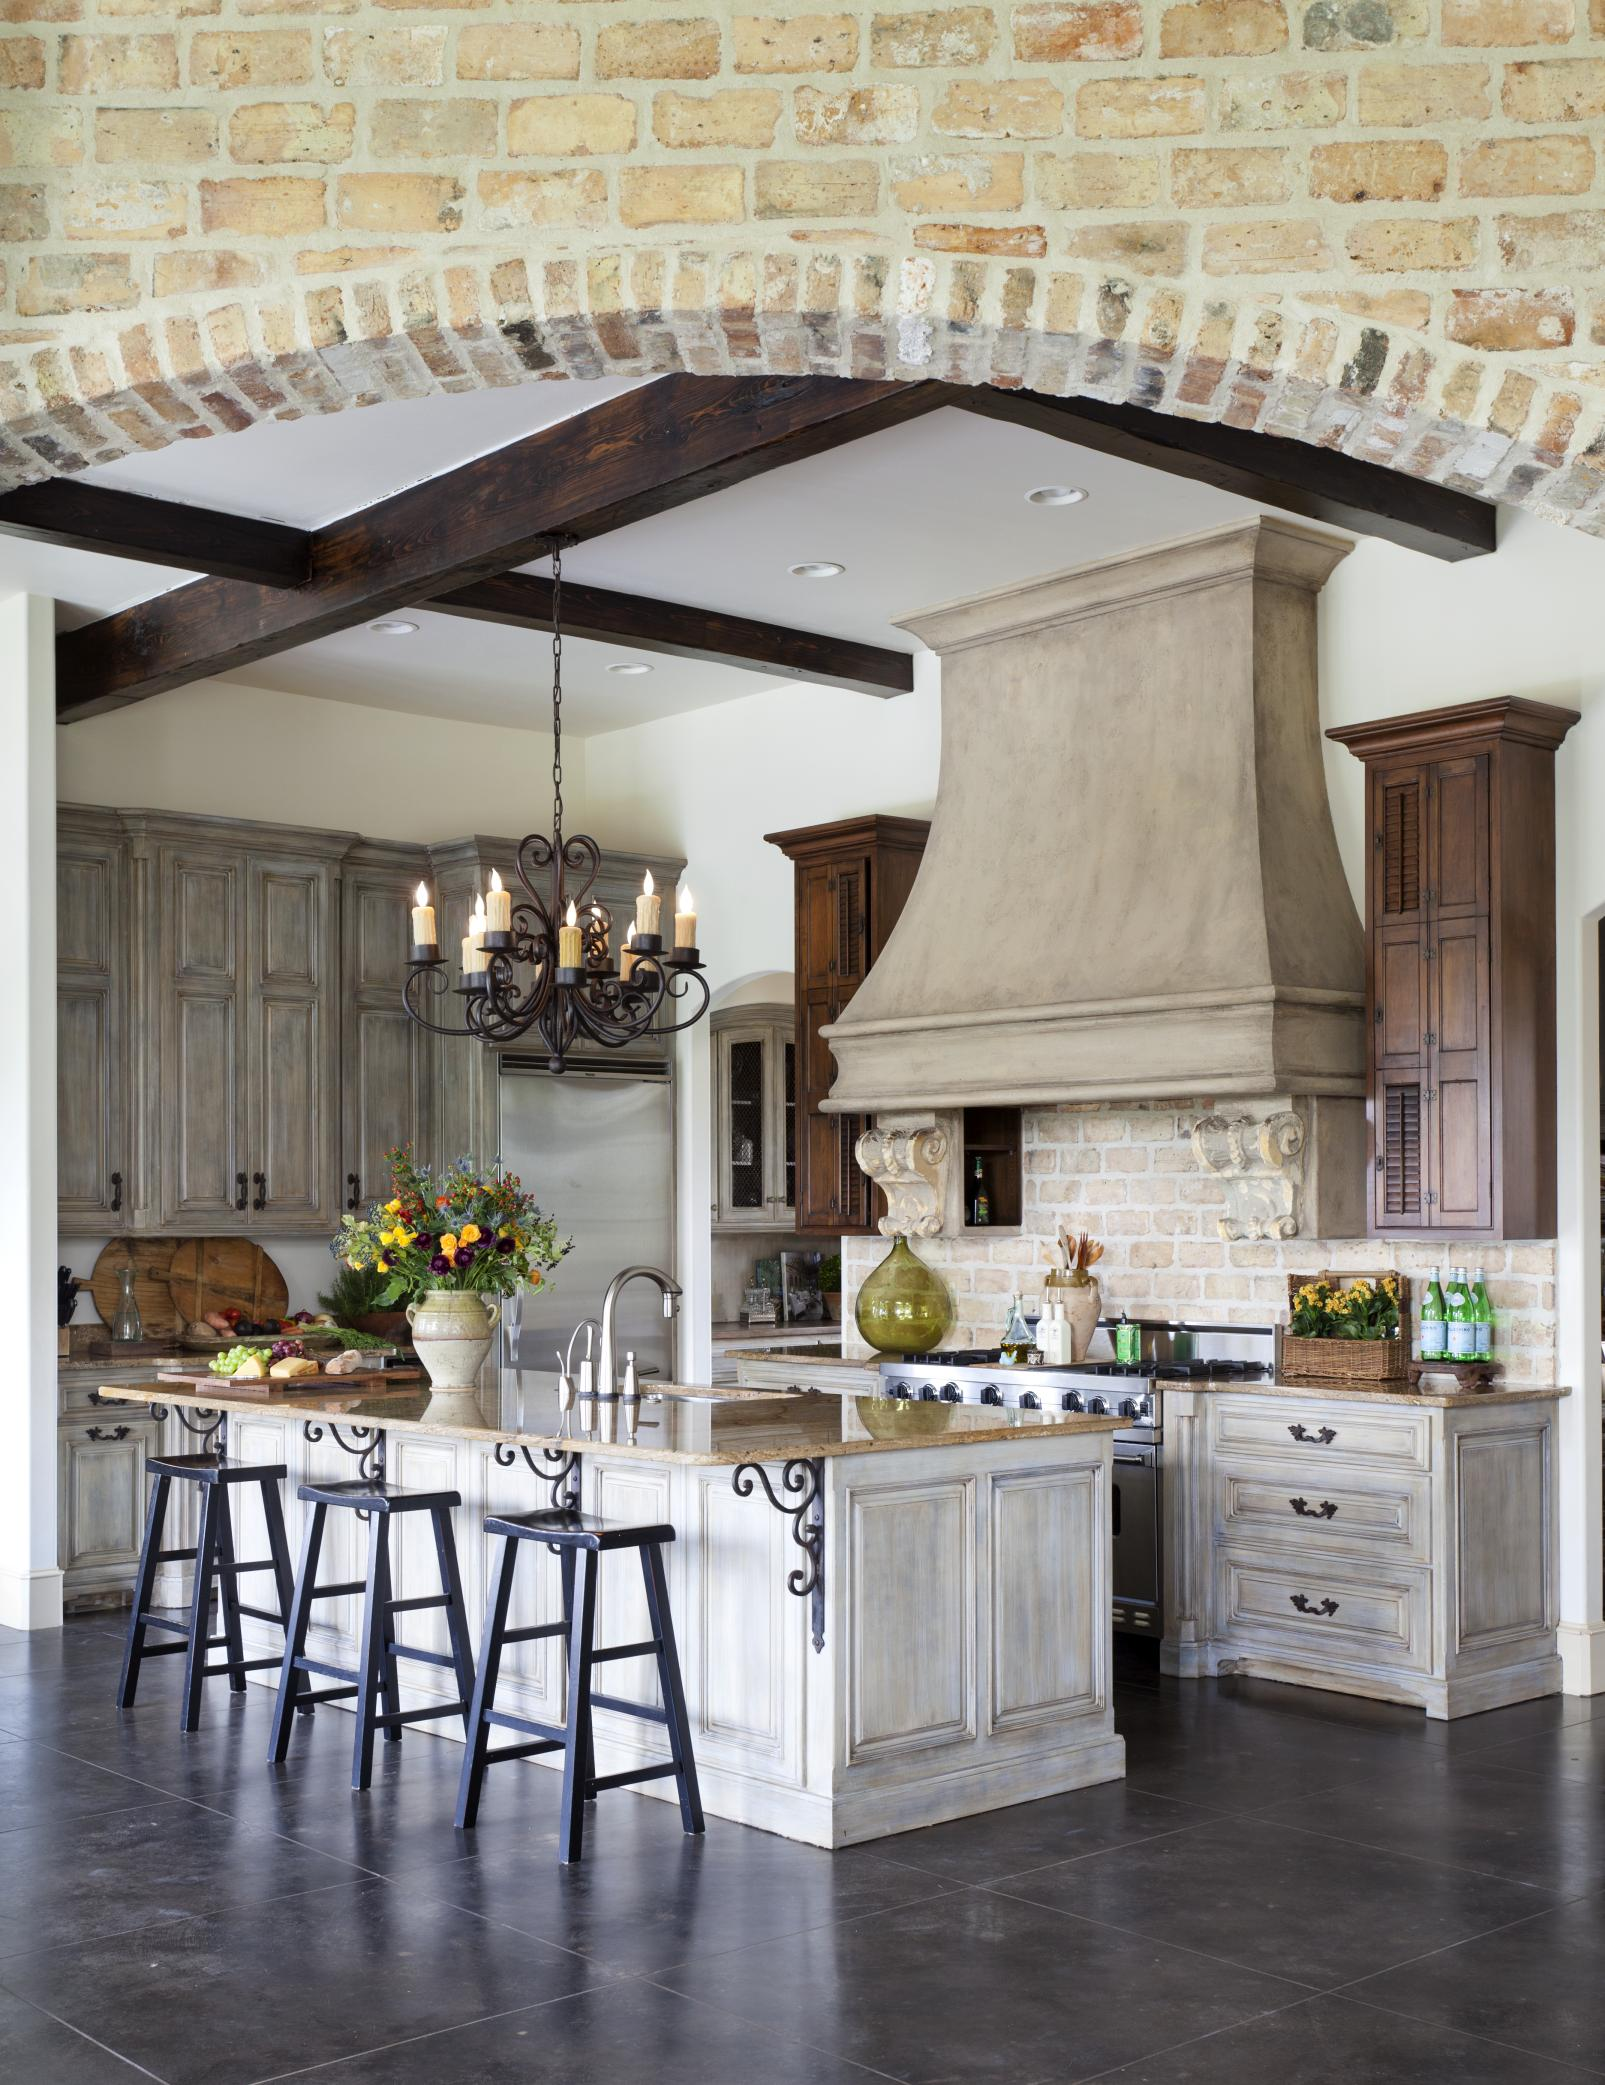 Cozy French Country Kitchen Designs For The Ones That Love ... on Rustic:fkvt0Ptafus= Farmhouse Kitchen  id=55886